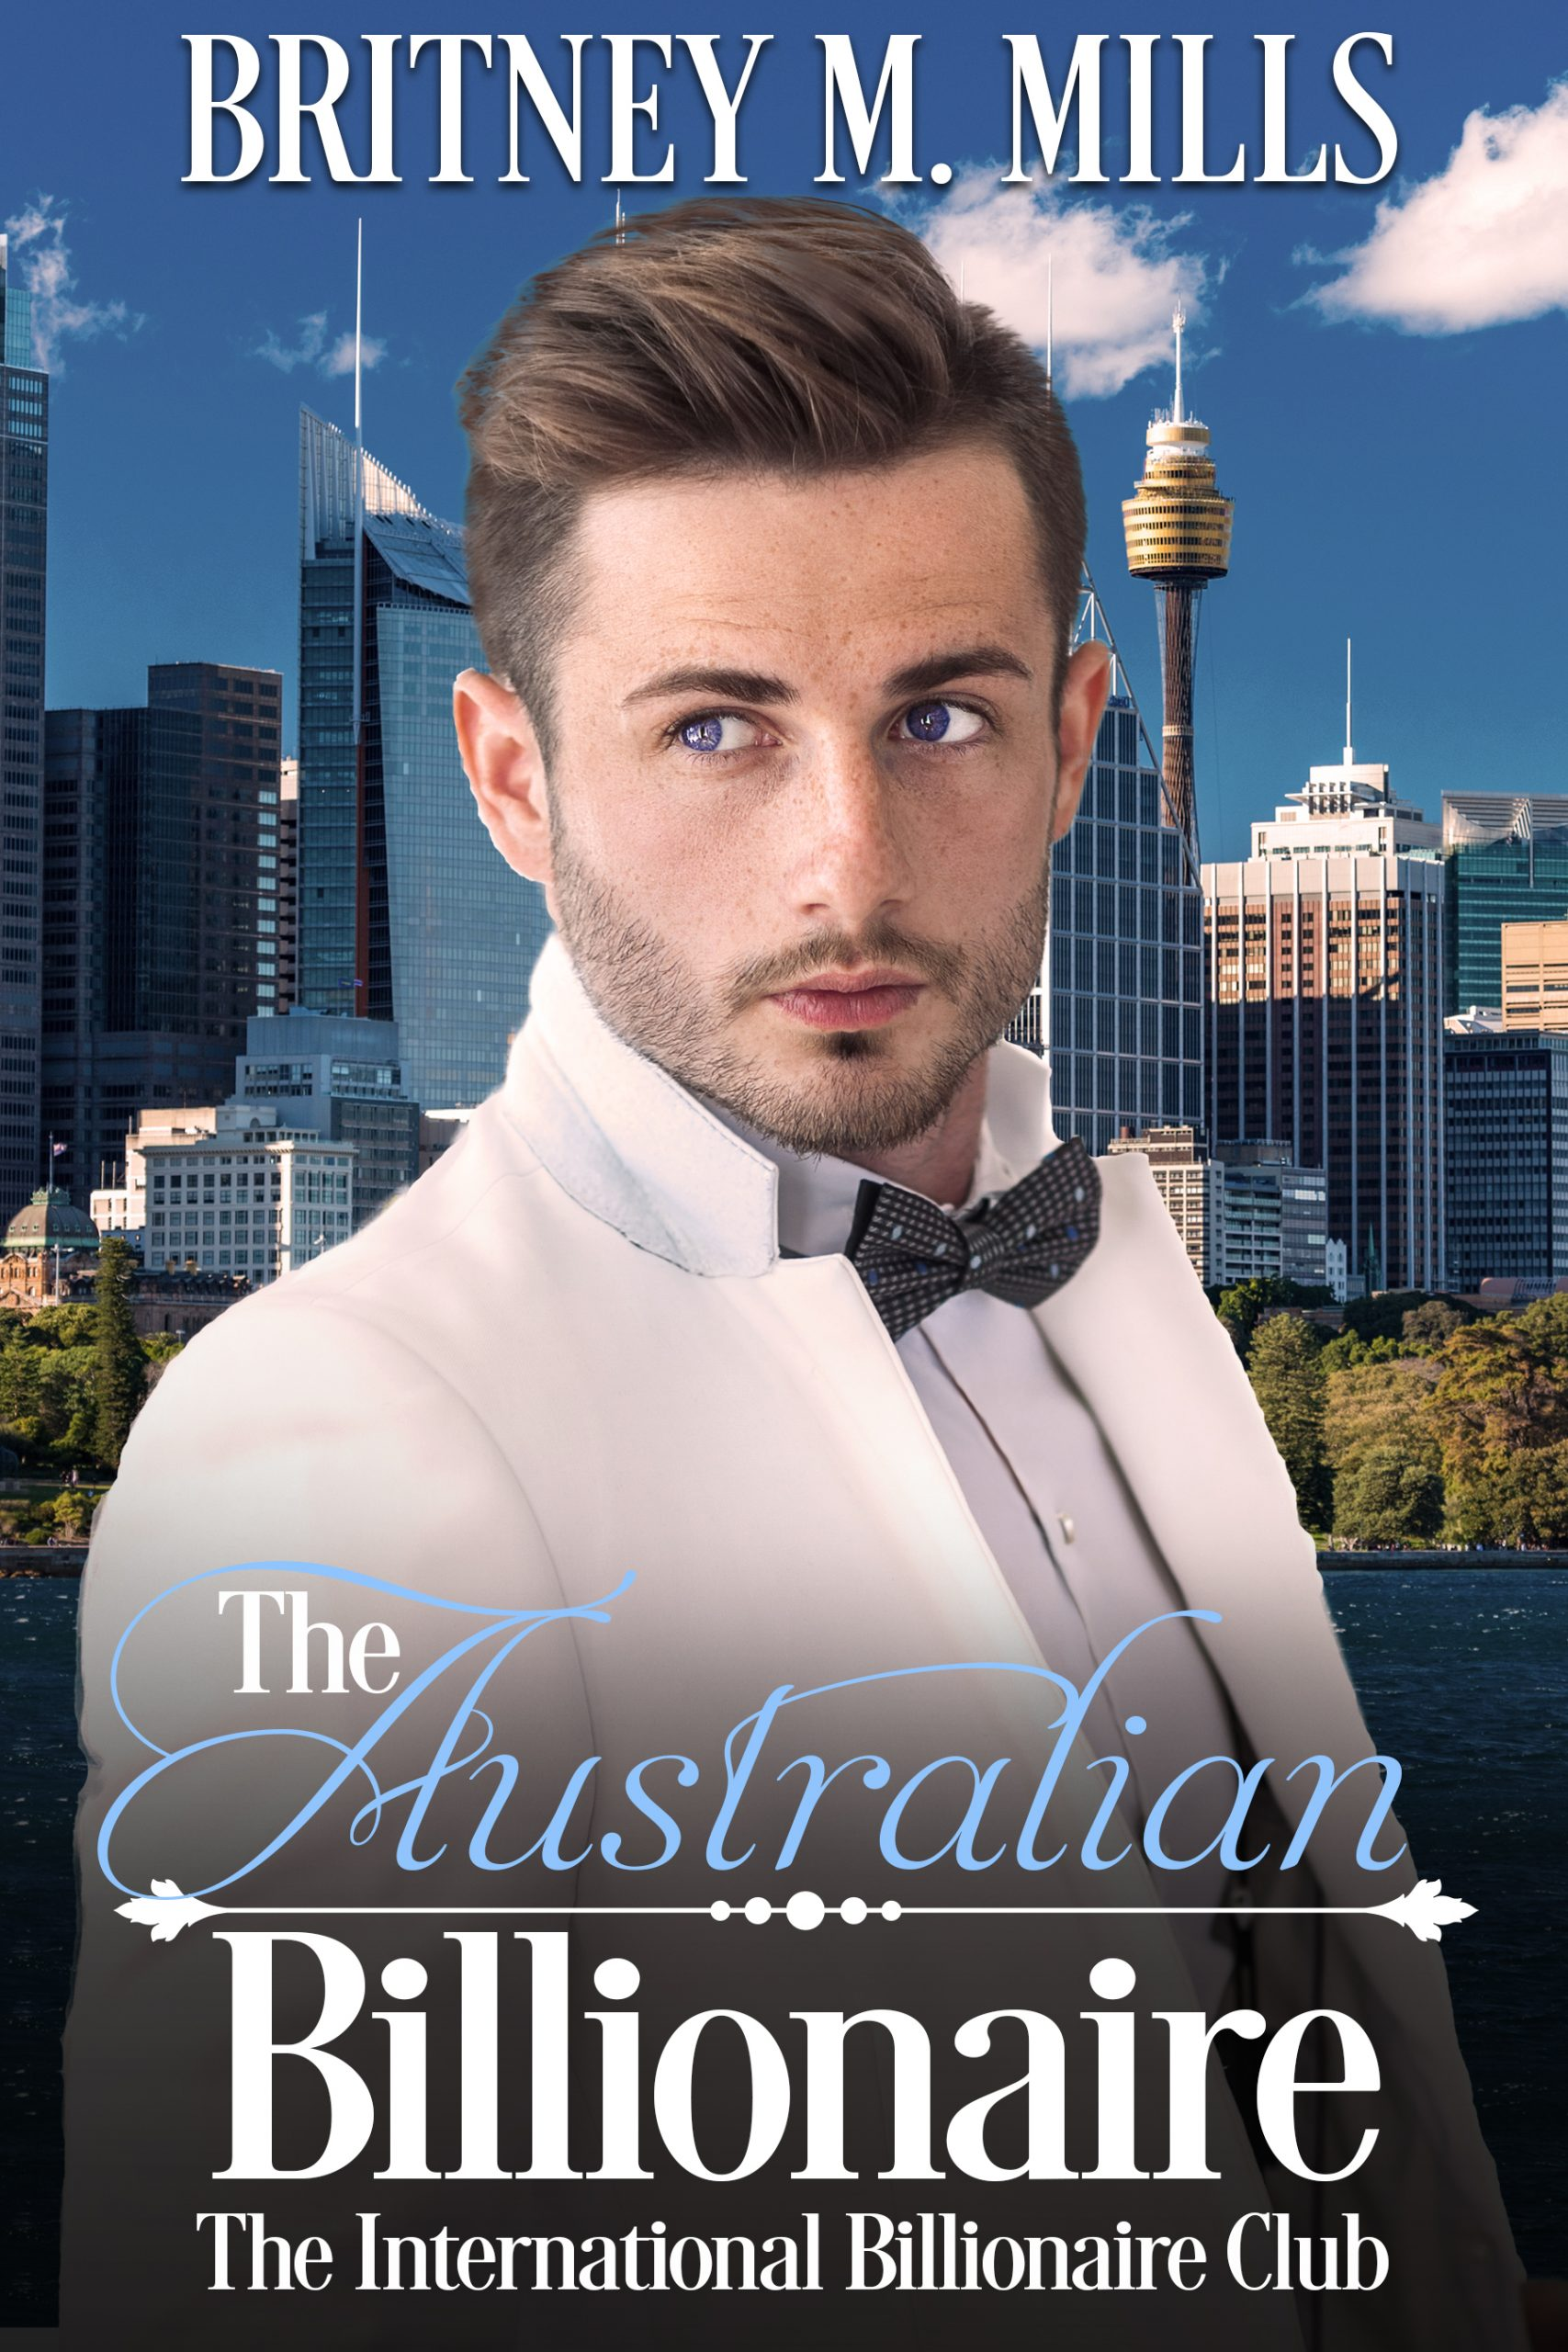 The Australian Billionaire by Britney M. Mills l International Billionaire Club Series